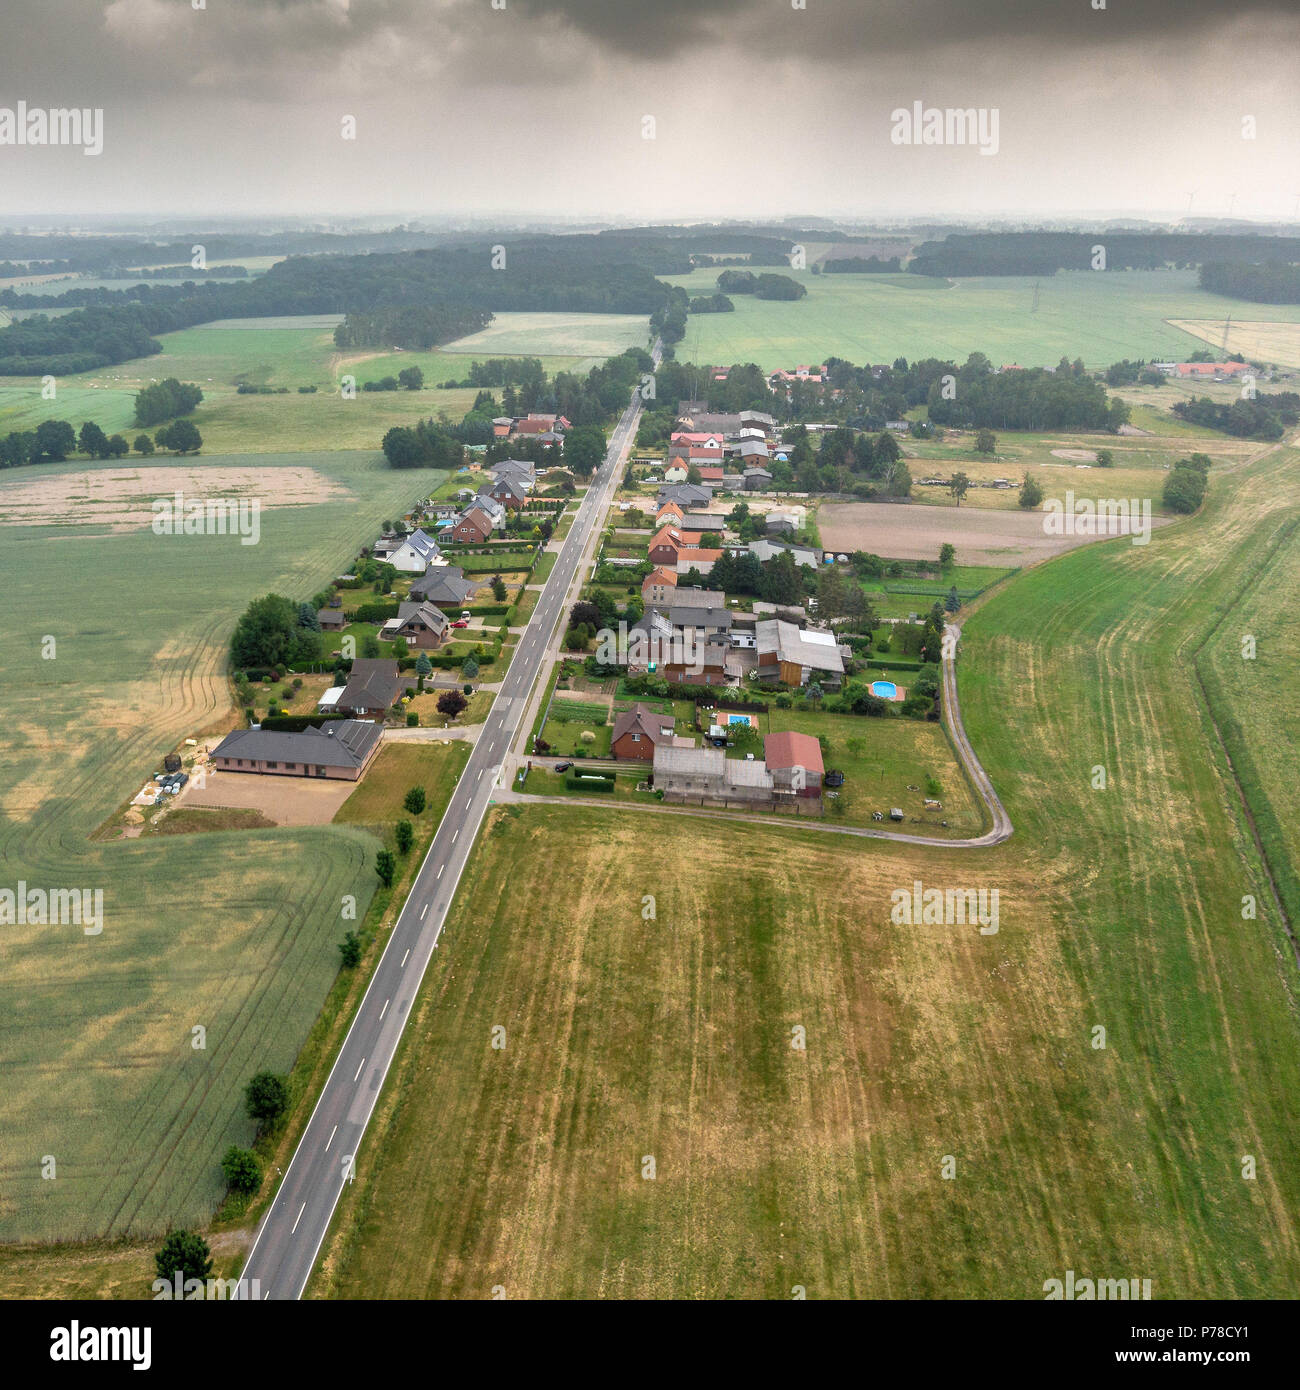 Aerial view of a village suburb in the rural area of Saxony-Anhalt, made with drone - Stock Image